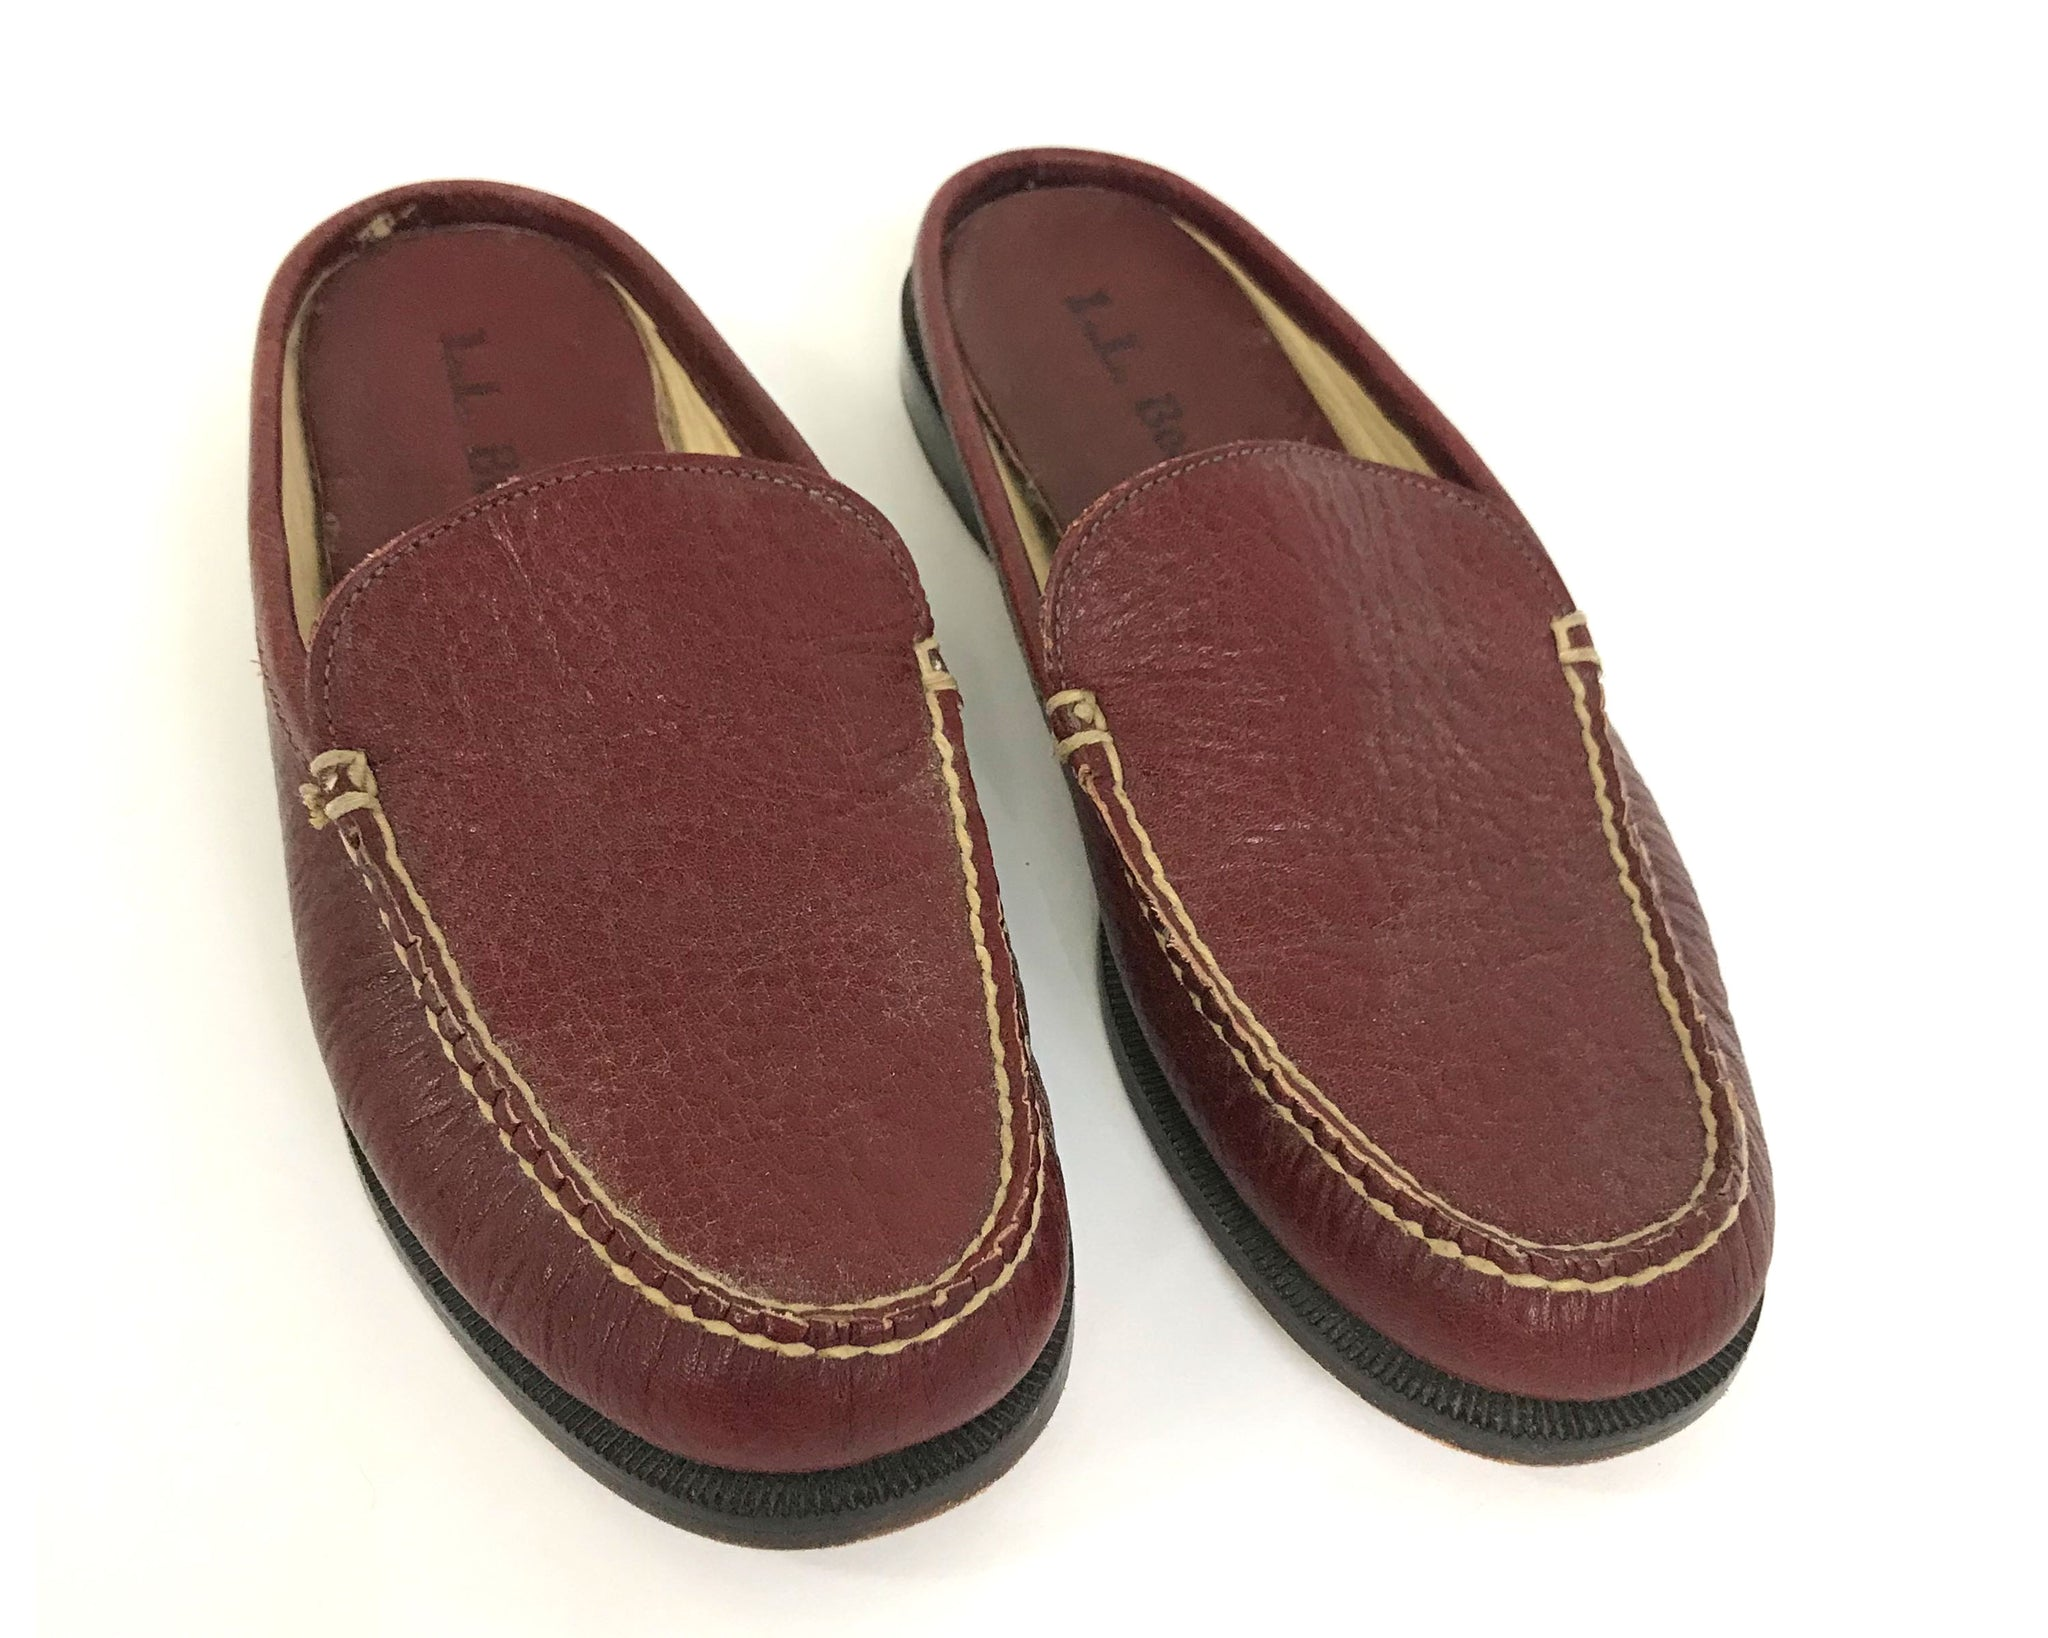 L.L. Bean Leather Mules